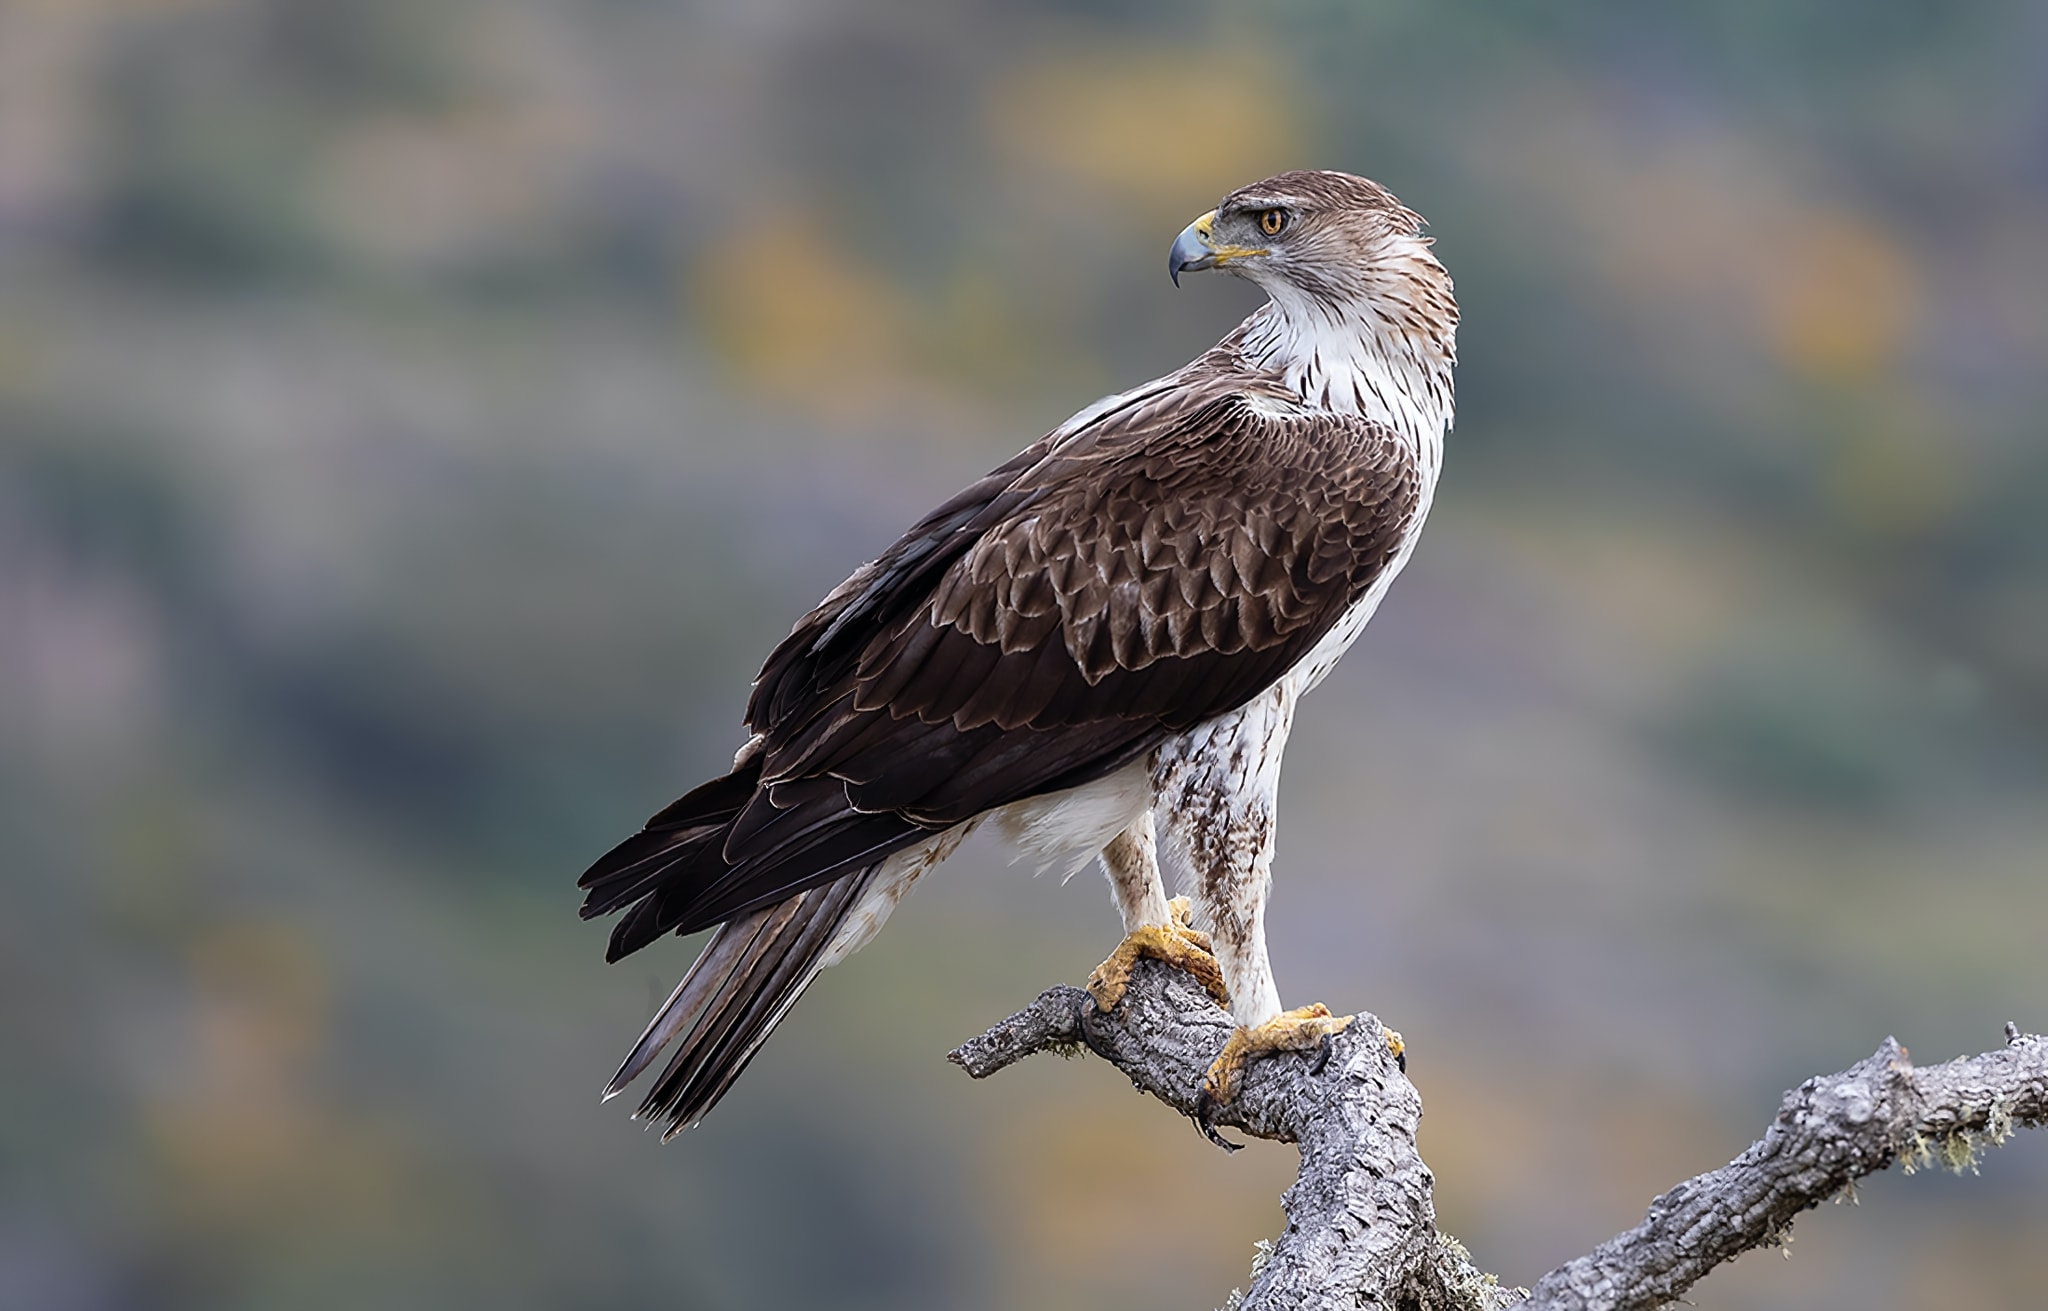 One of the Bonellis Eagles perched on a bare tree photographed at the locations used for the NaturesLens Spanish Birds of the Castilian Plains photography holiday